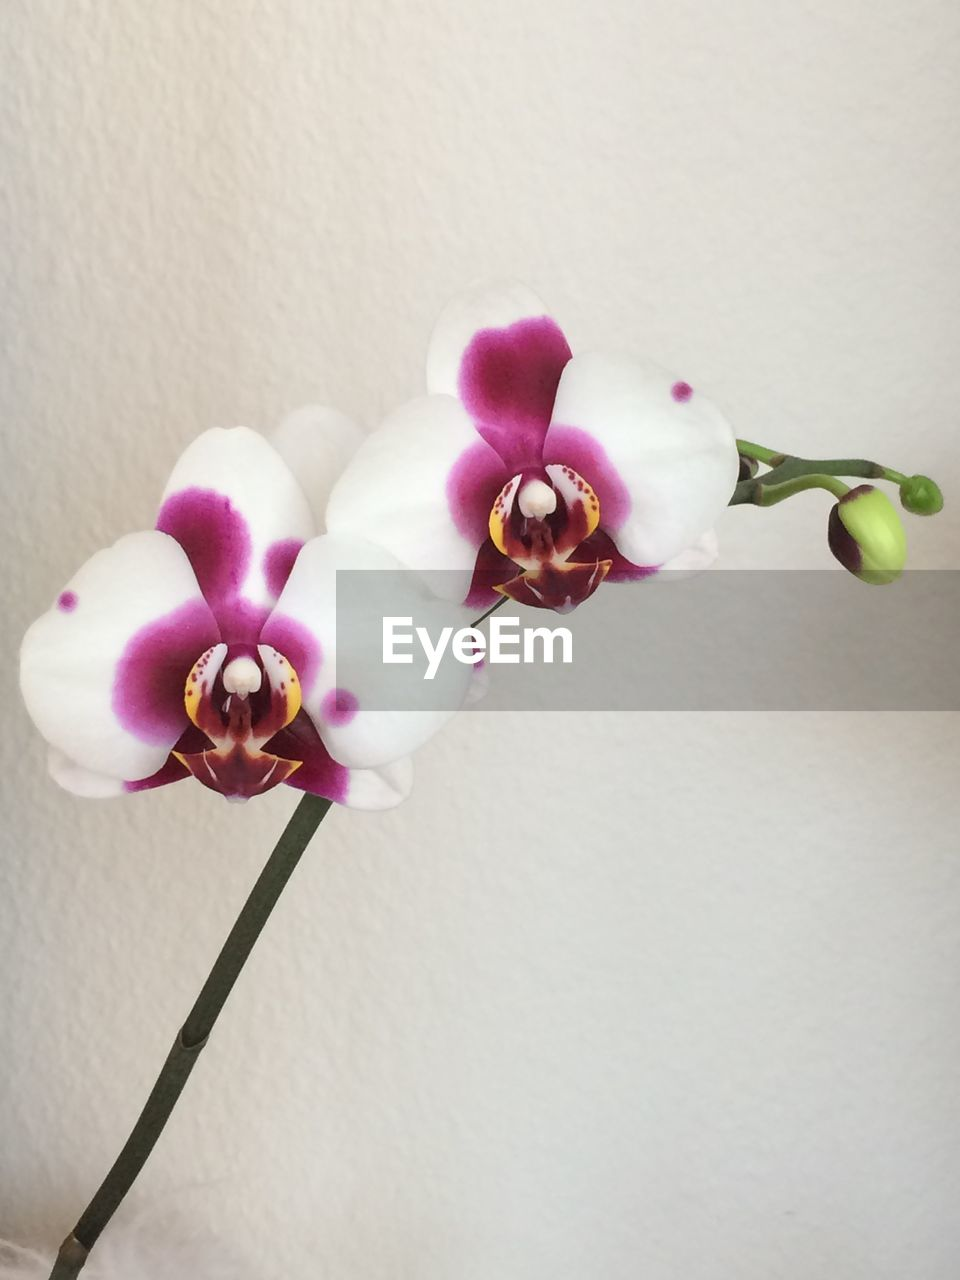 flower, flowering plant, fragility, plant, vulnerability, beauty in nature, petal, orchid, freshness, close-up, wall - building feature, flower head, inflorescence, indoors, white color, pink color, growth, nature, no people, plant stem, purple, flower arrangement